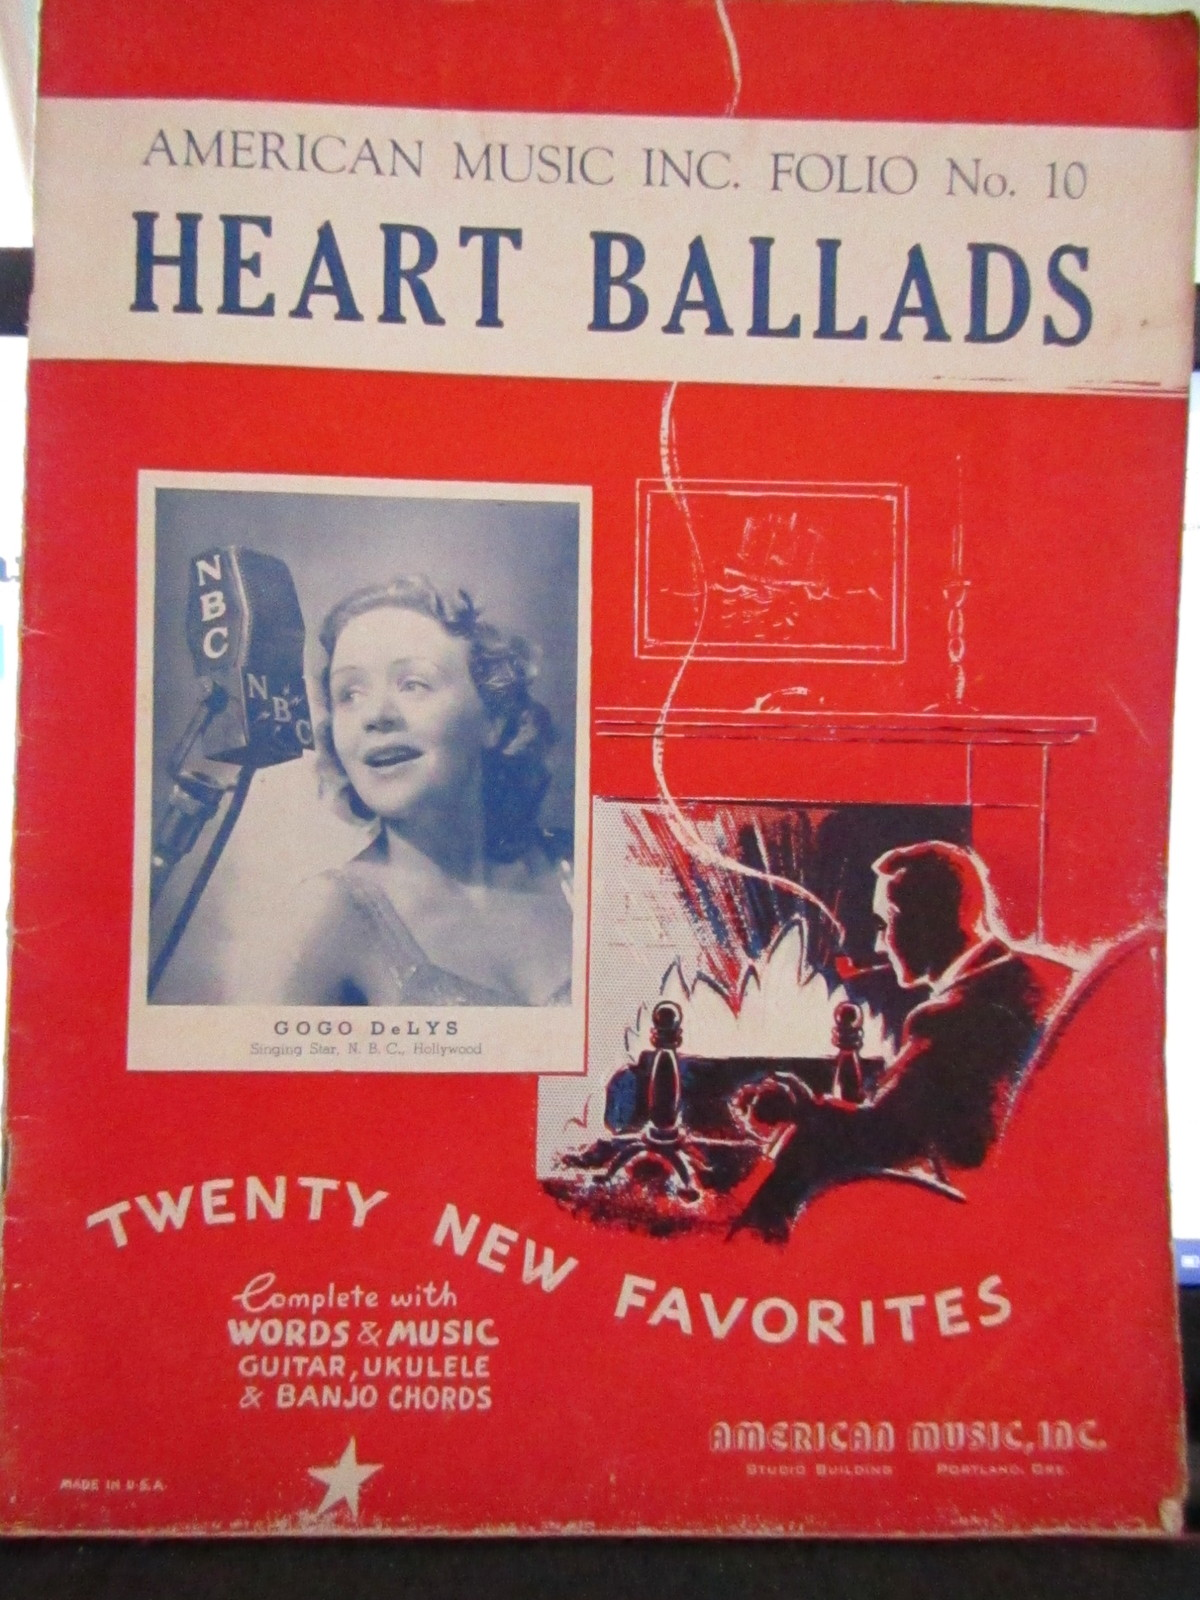 American Music Inc. Folio No. 10 Heart Ballads